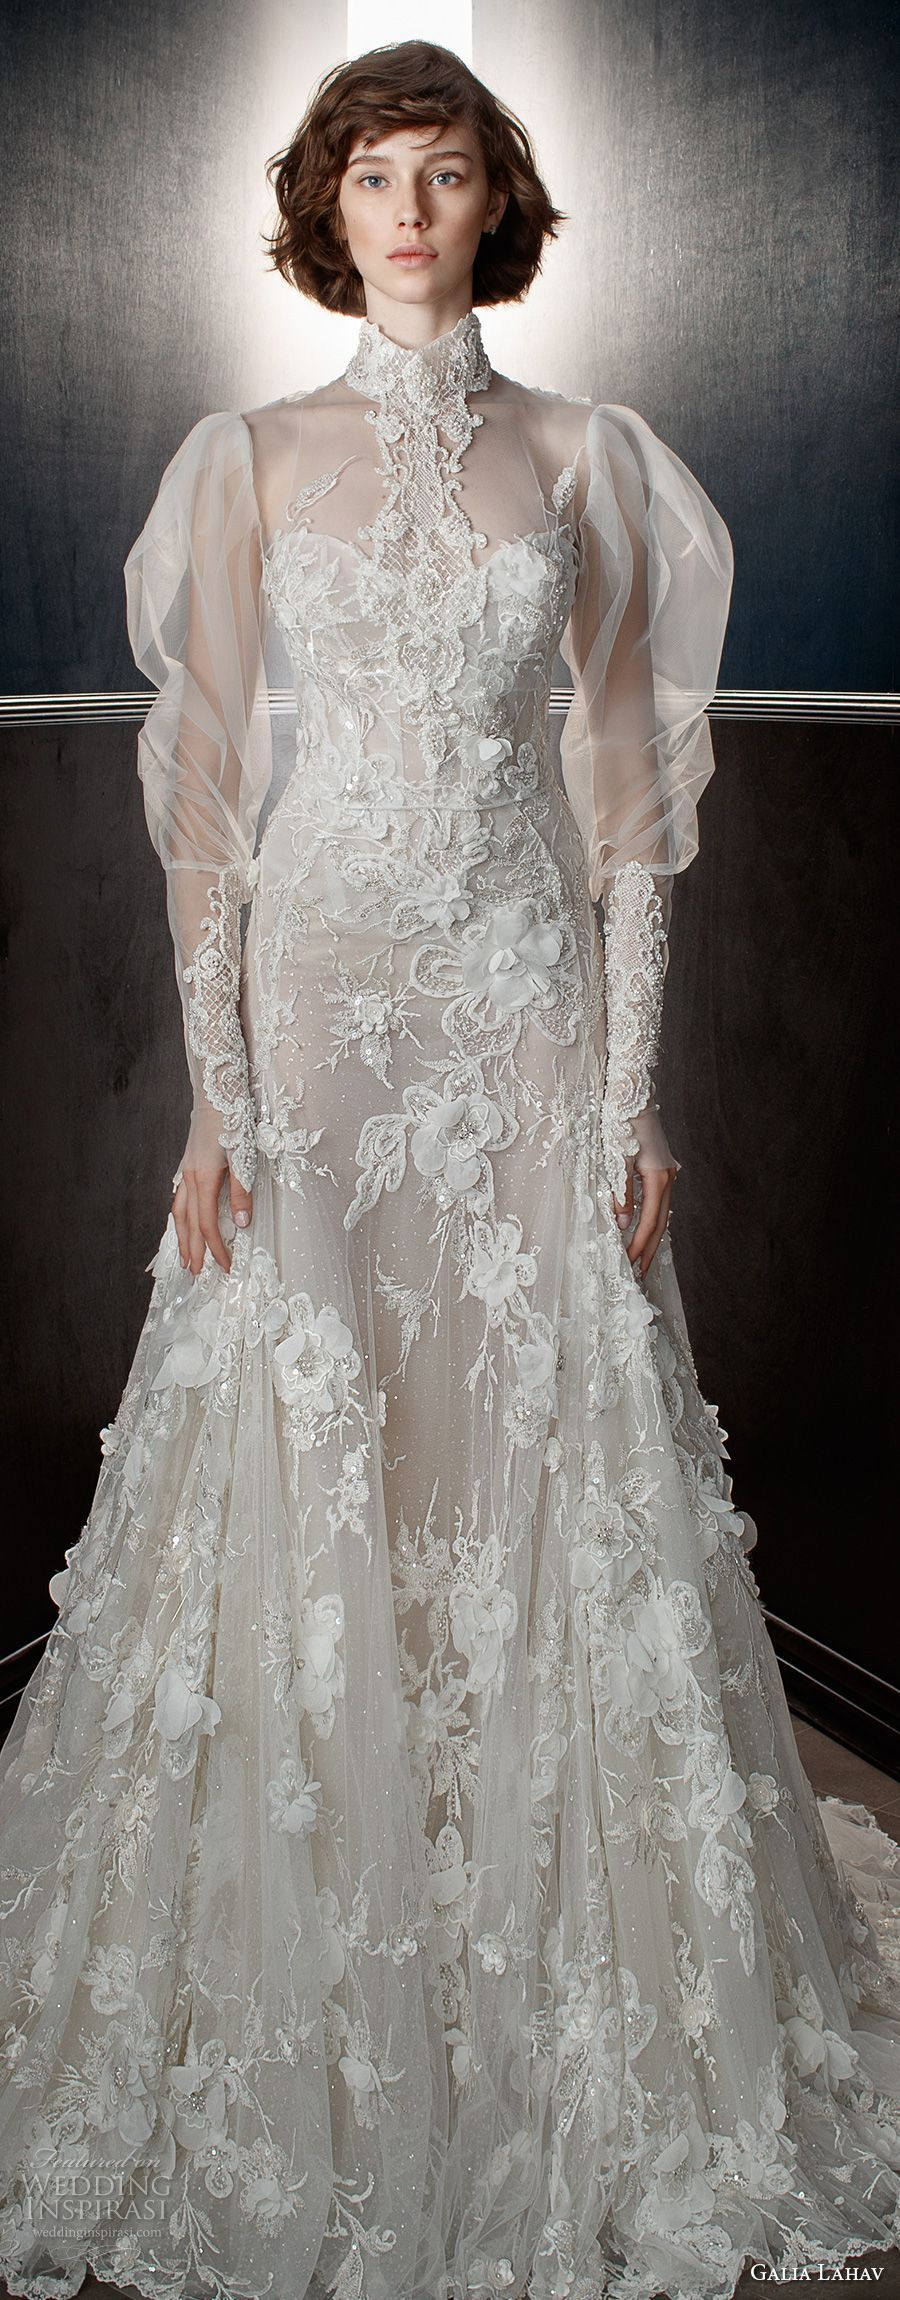 Galia lahav spring bridal puffed long sleeves high neck